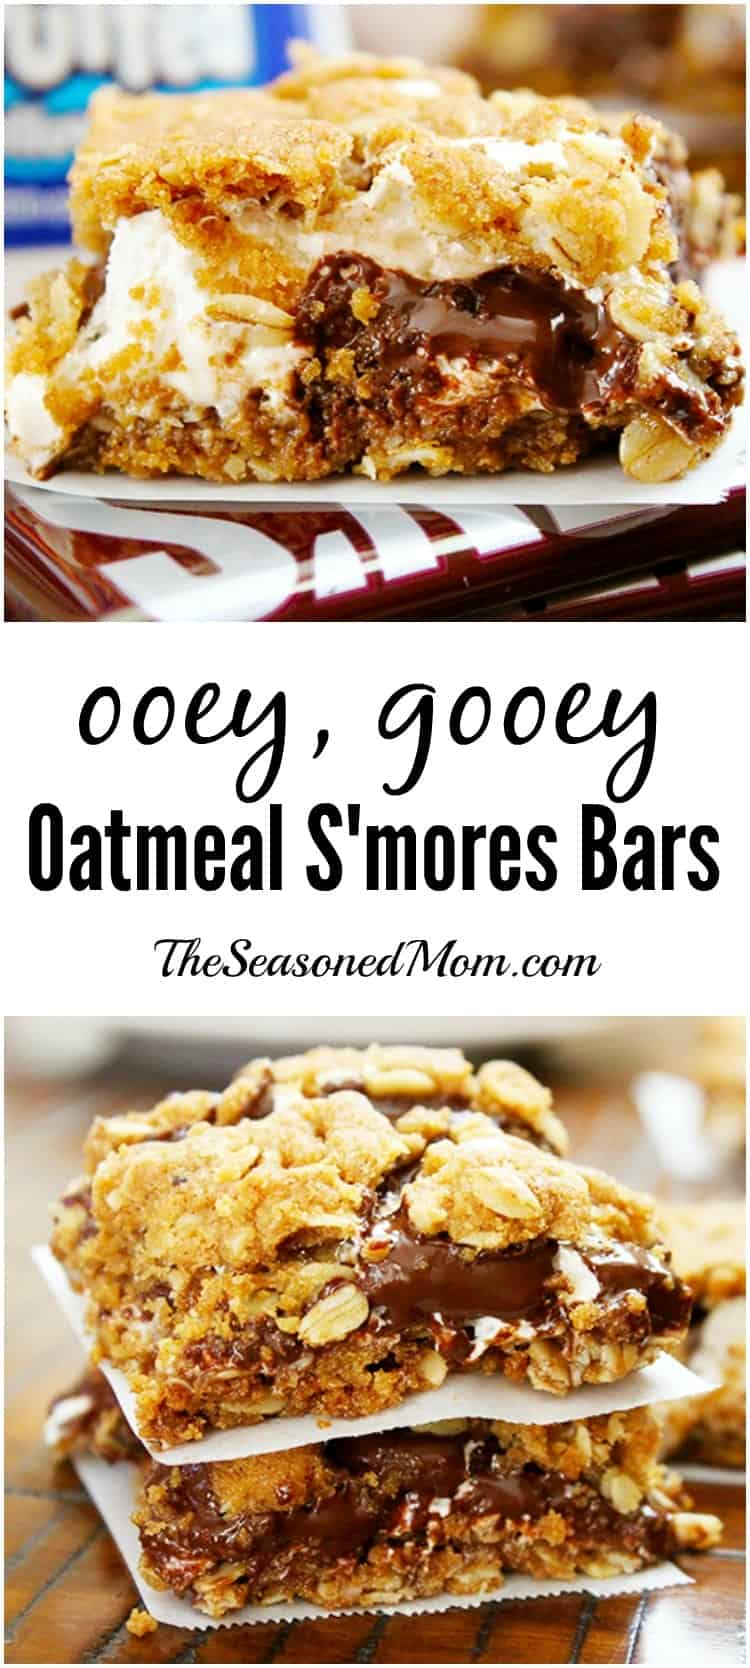 marshmallow-toasting needed with these ooey, gooey oatmeal s'mores ...